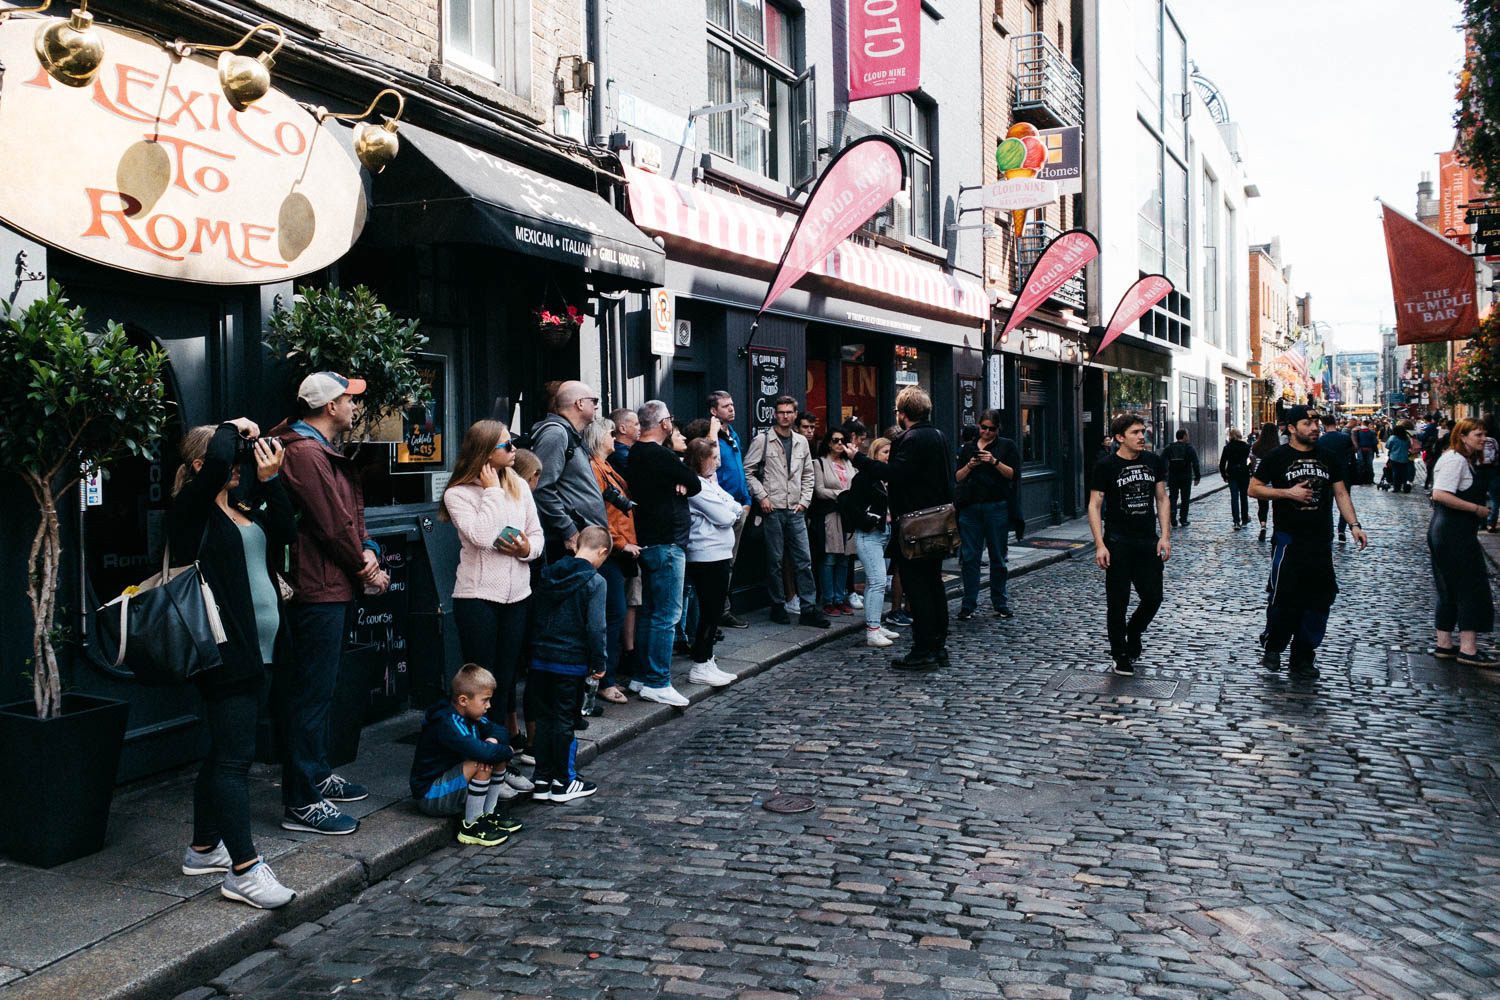 Tour Group in Temple Bar